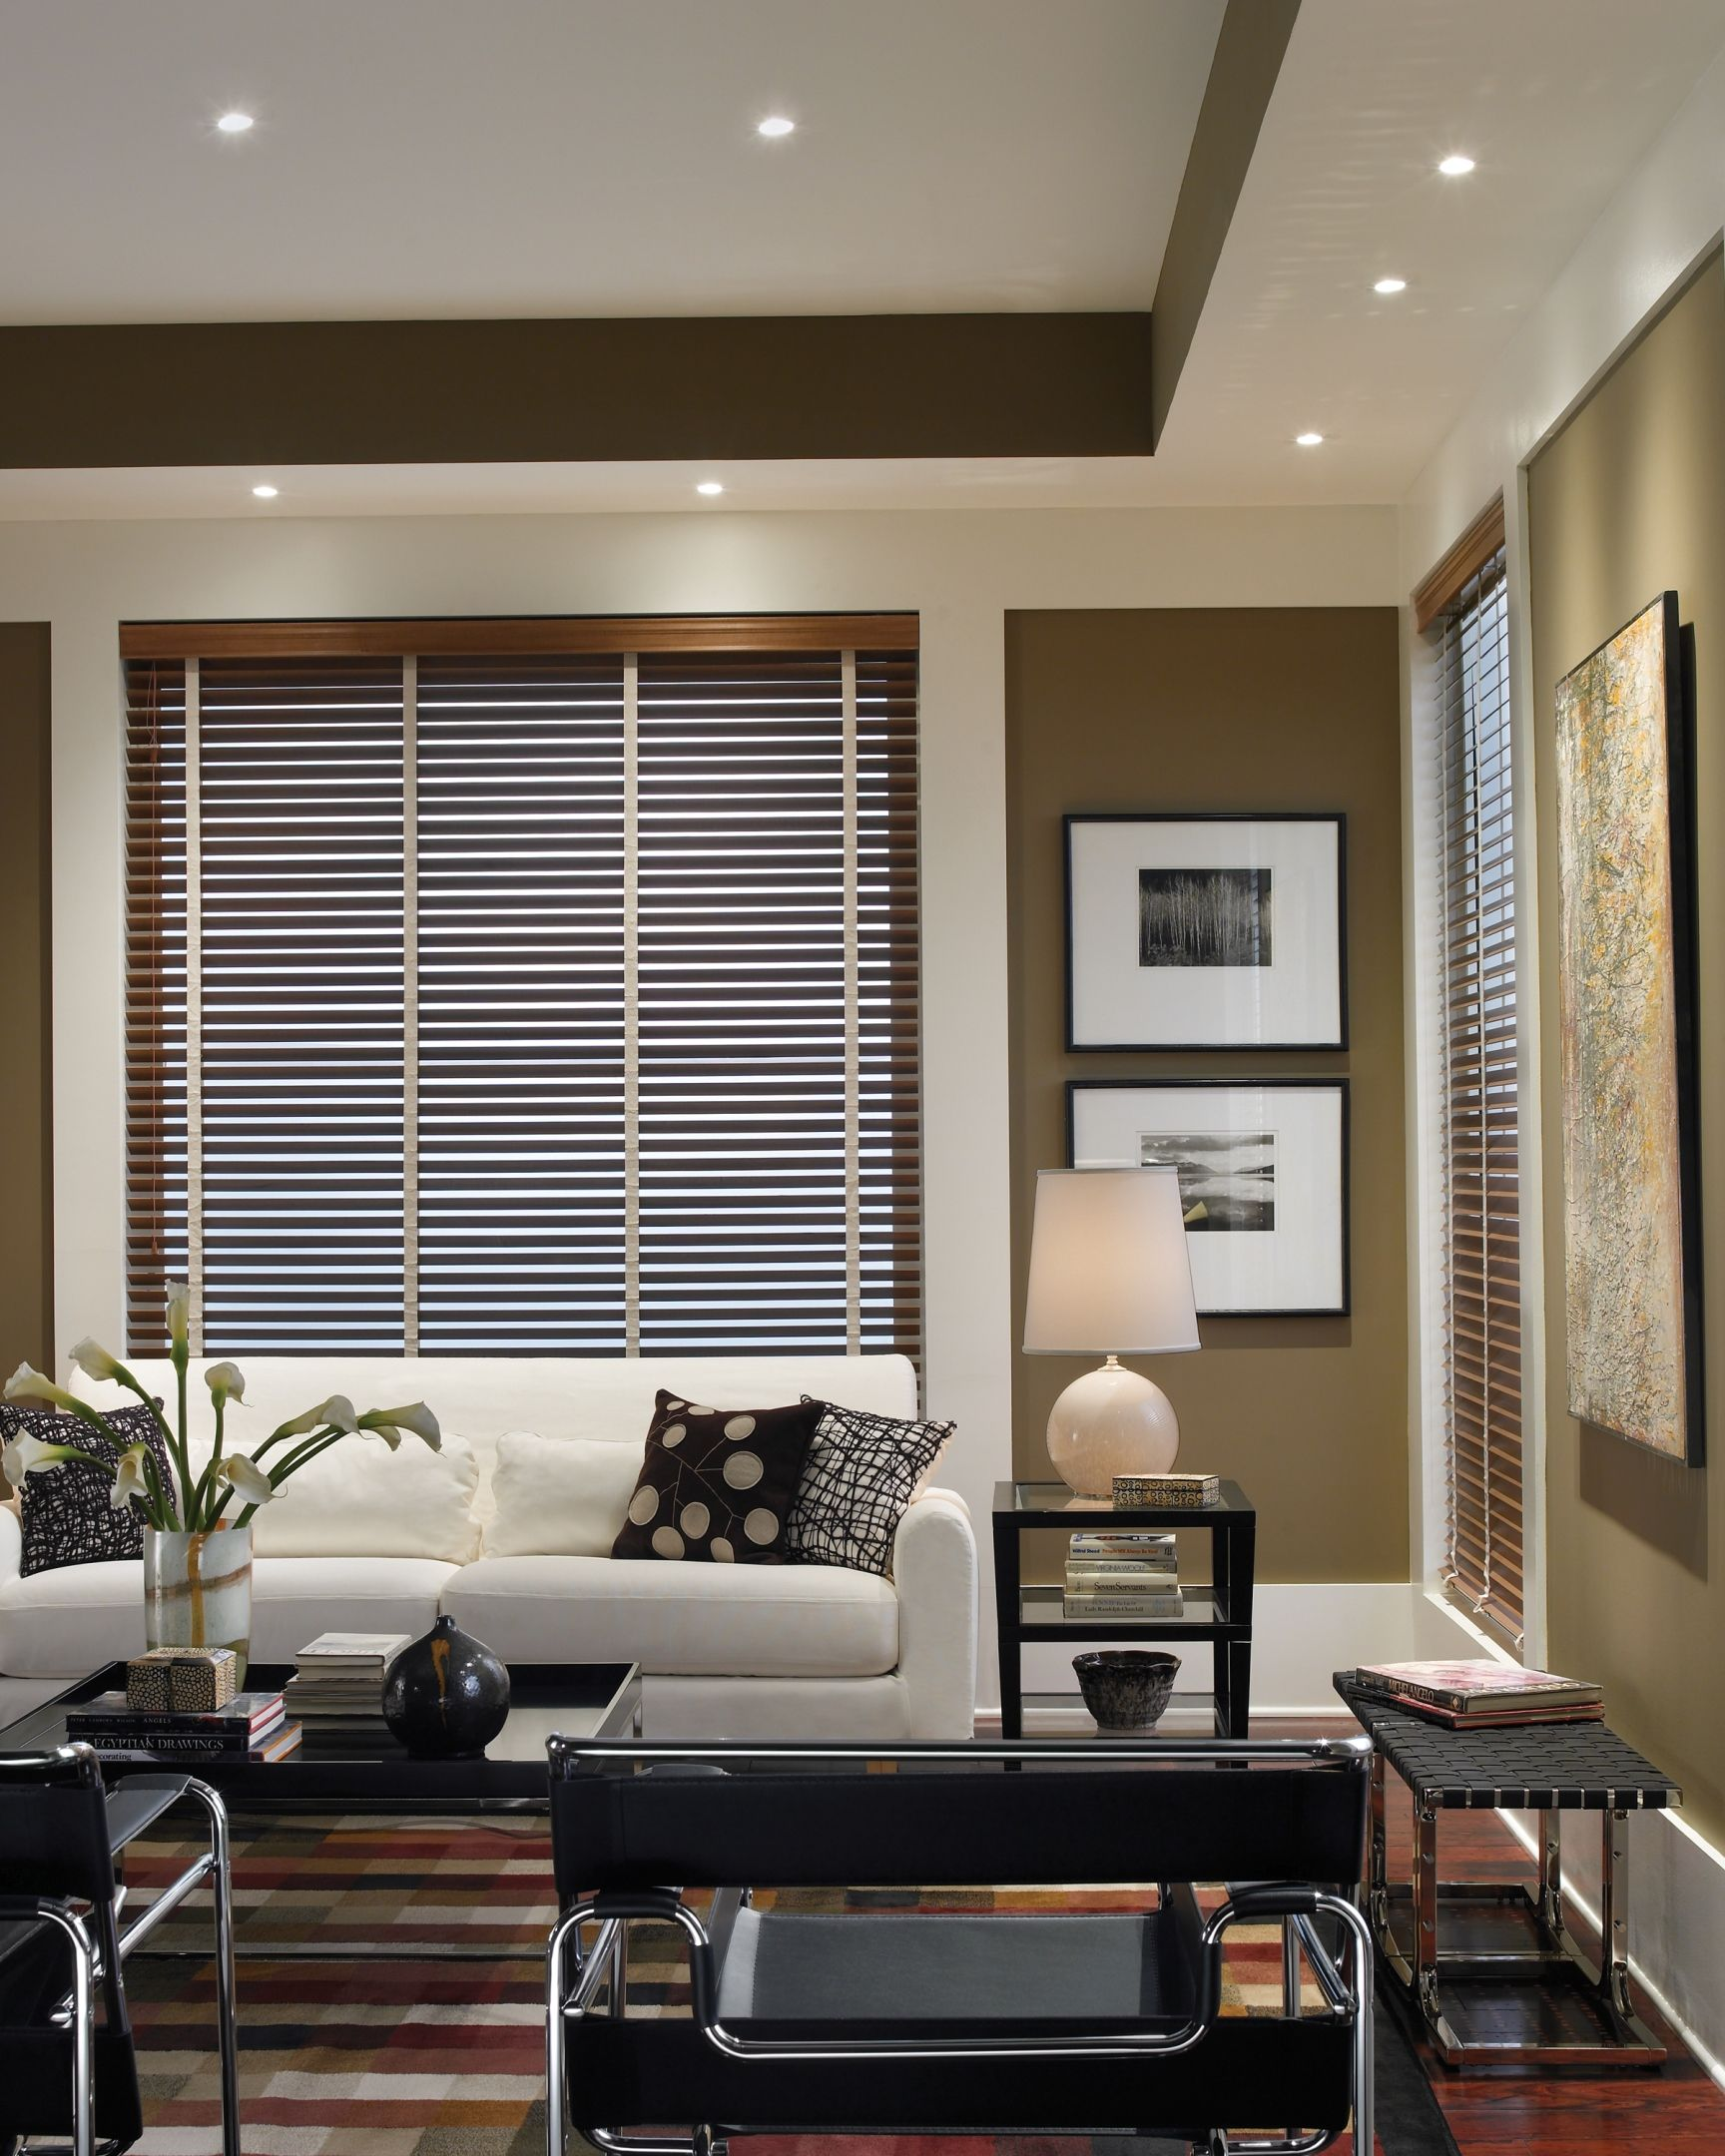 How to Choose Recessed Lighting: Downlighting, Types, Trims ...